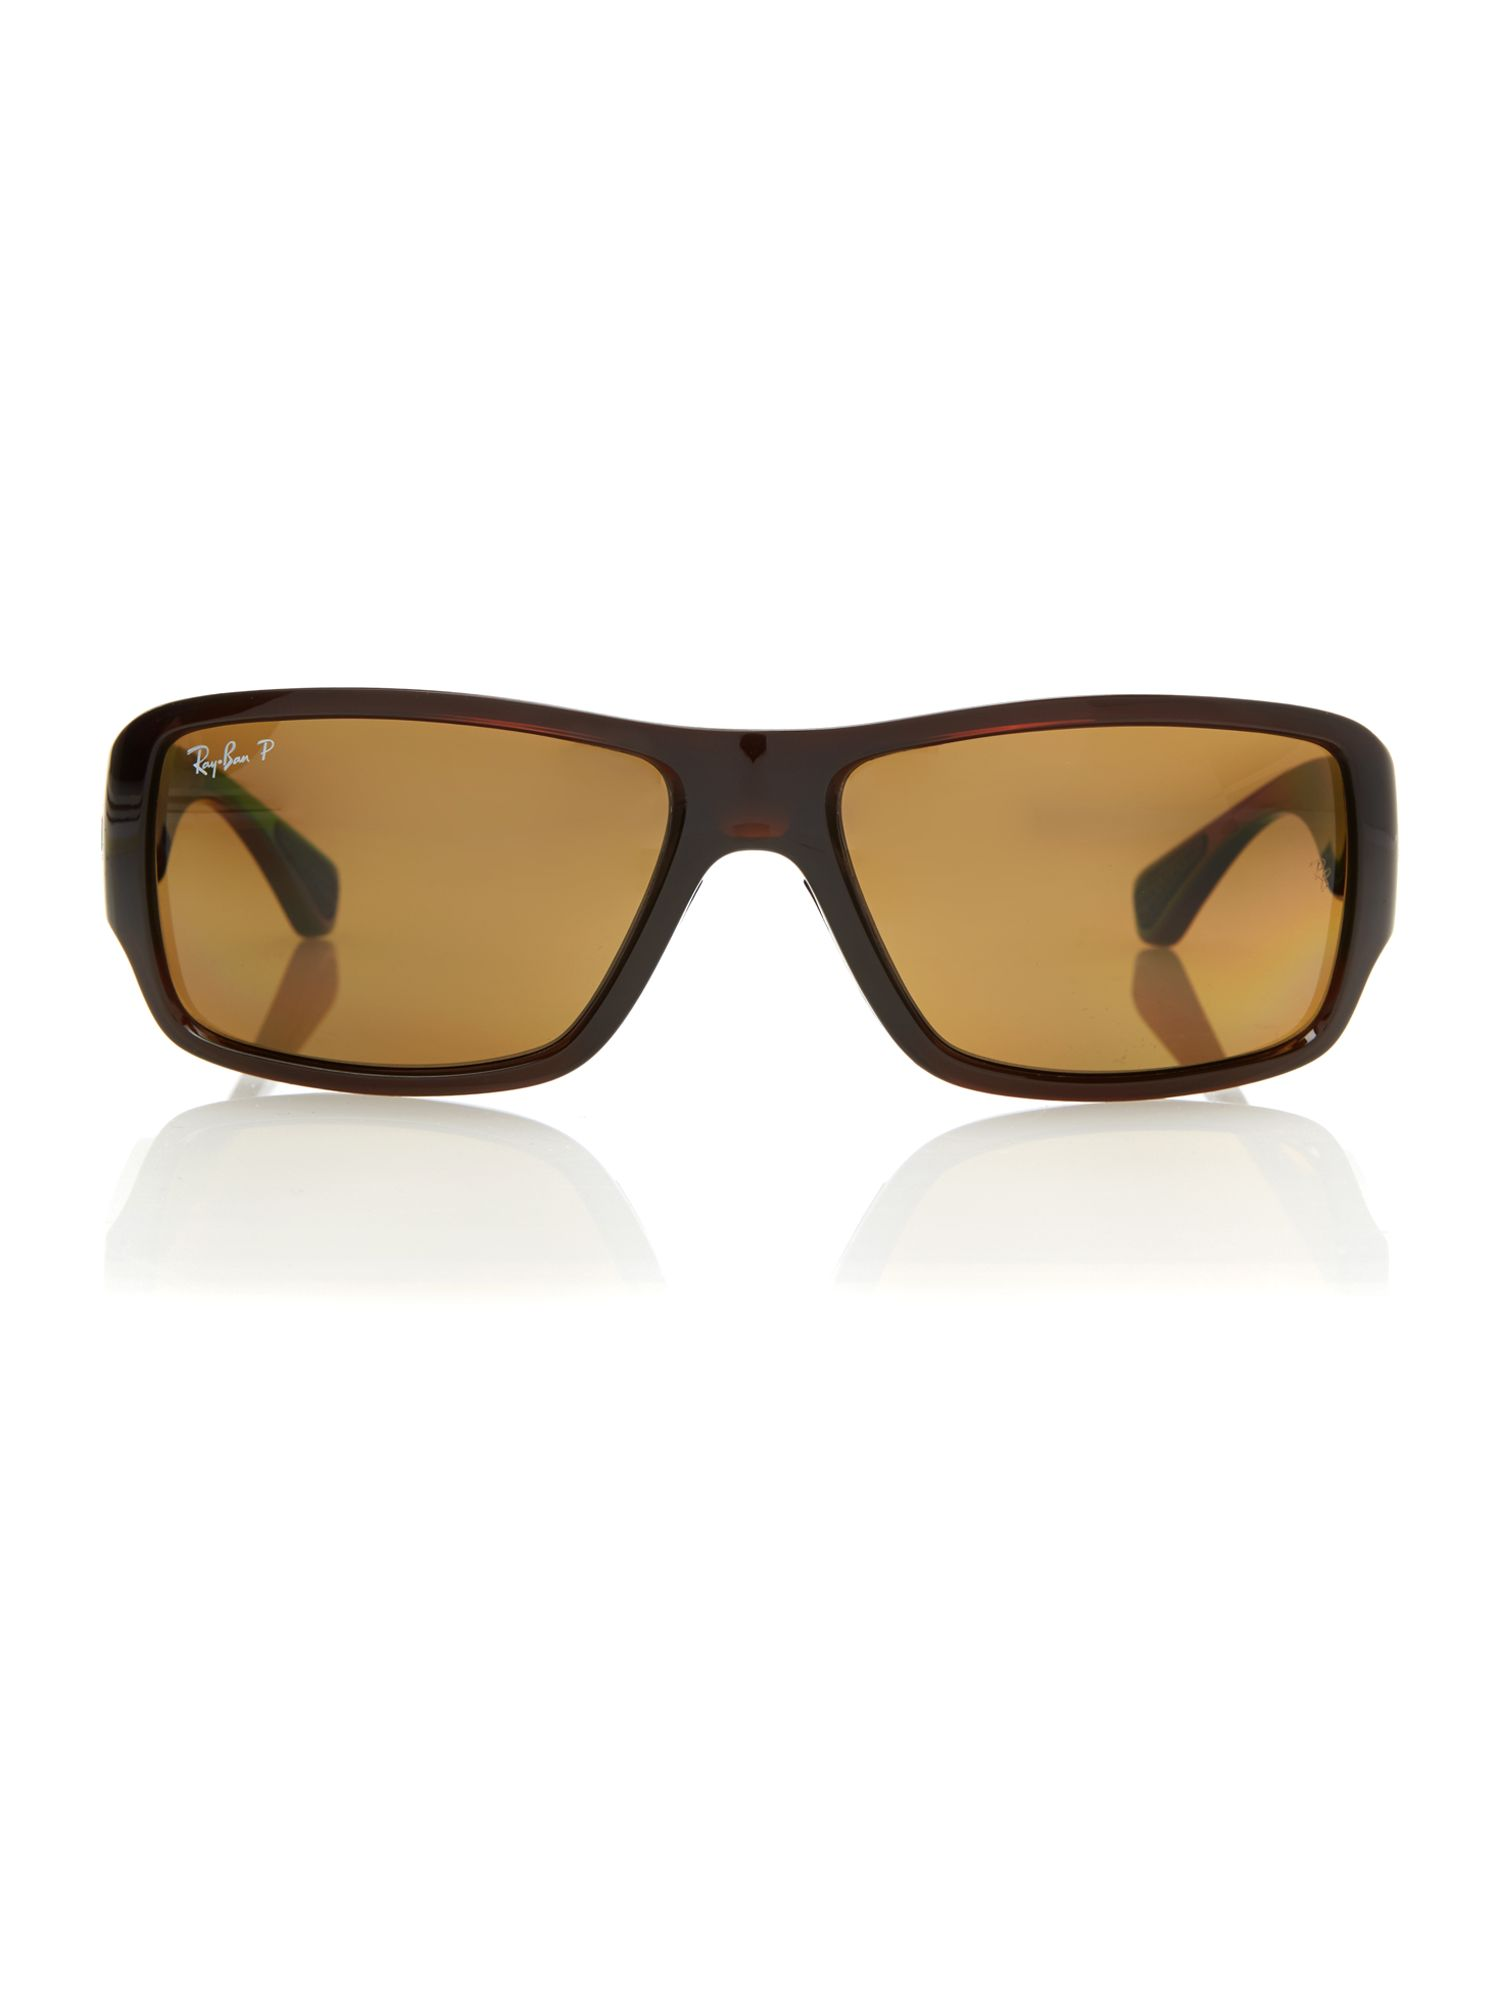 Men`s rectangle sunglasses